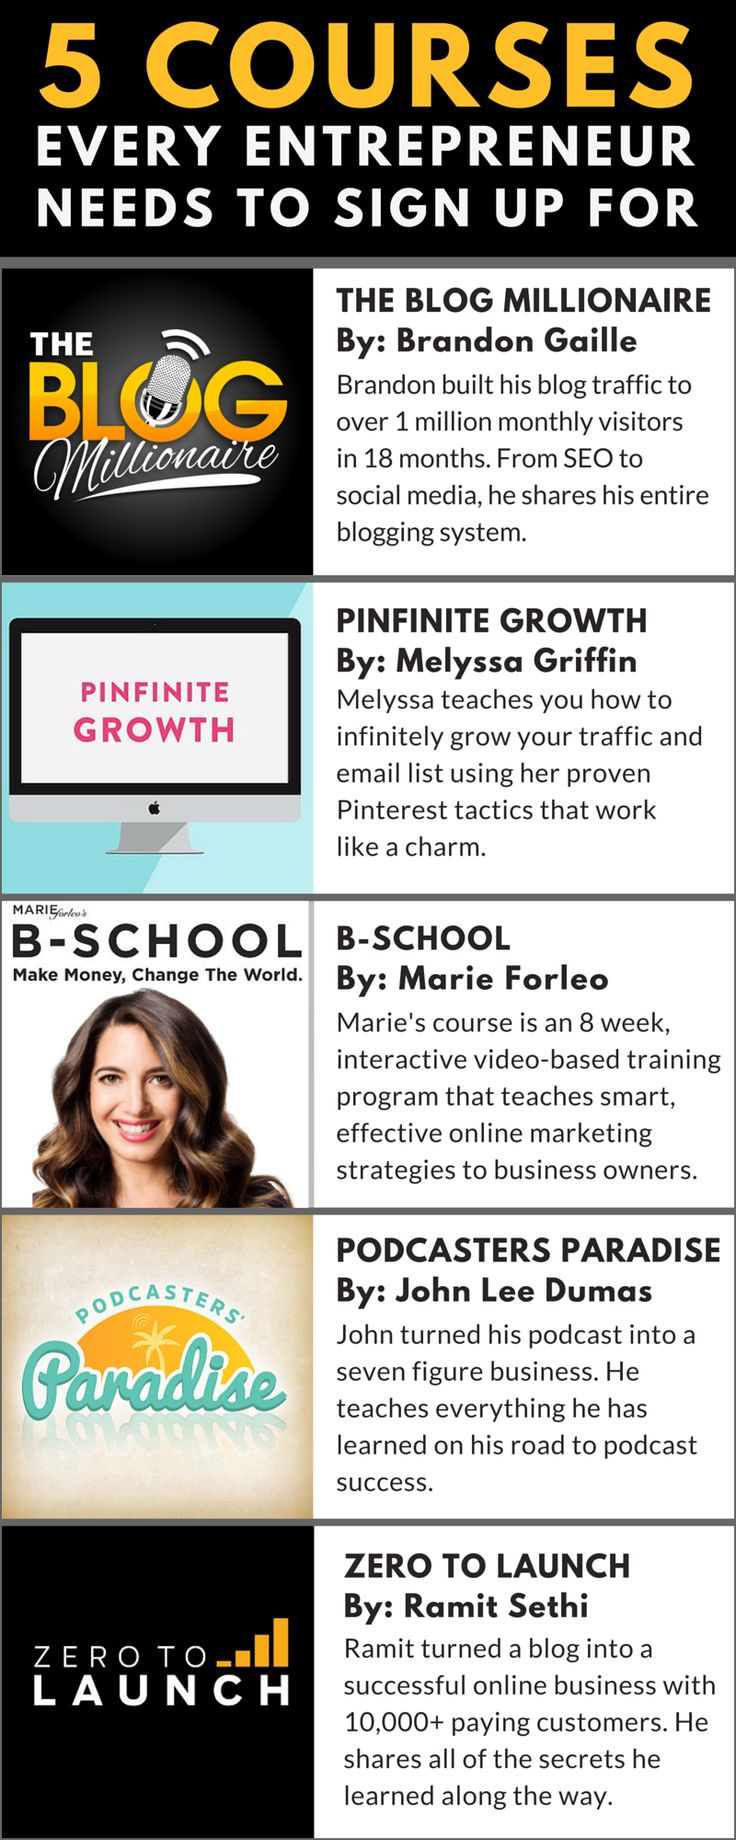 These 5 online courses are worth their weight in gold to entrepreneurs and small business owners. From blogging to podcasting, these courses will teach you everything you need to know about marketing and building a business.